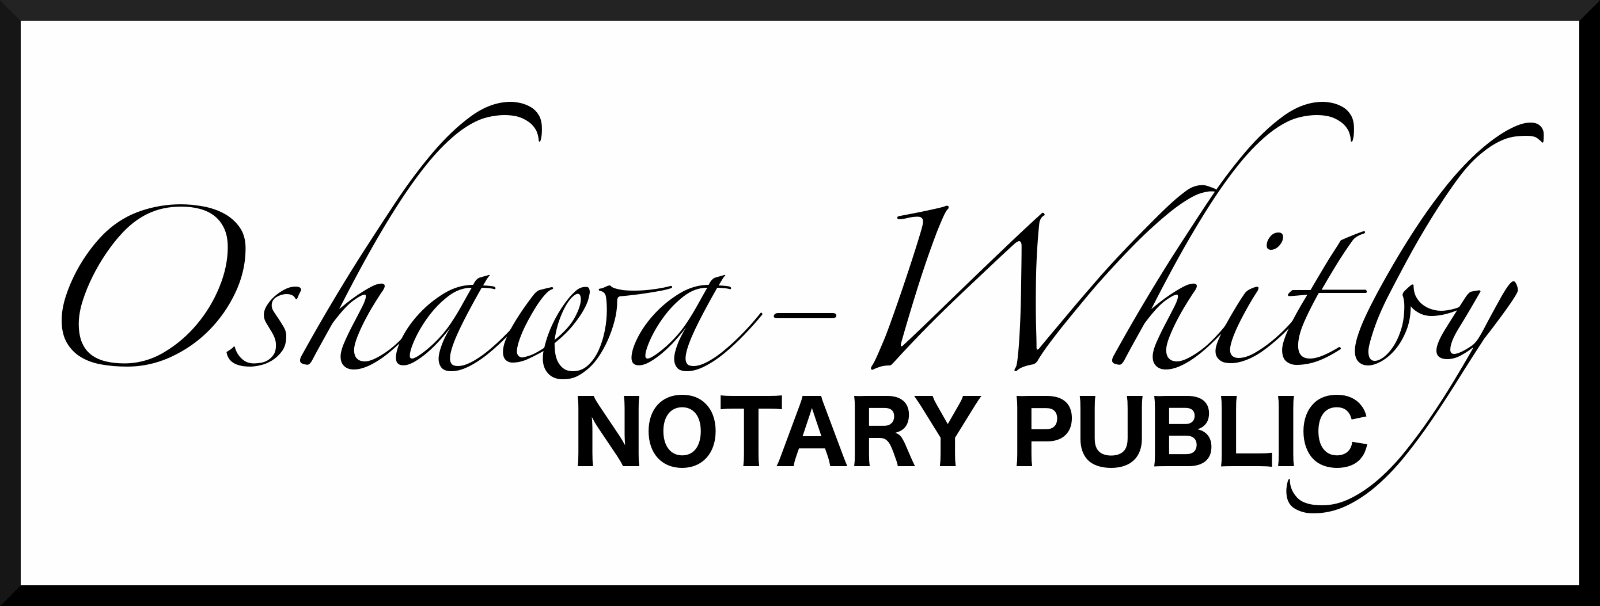 Oshawa-Whitby Notary Public: as low as $19